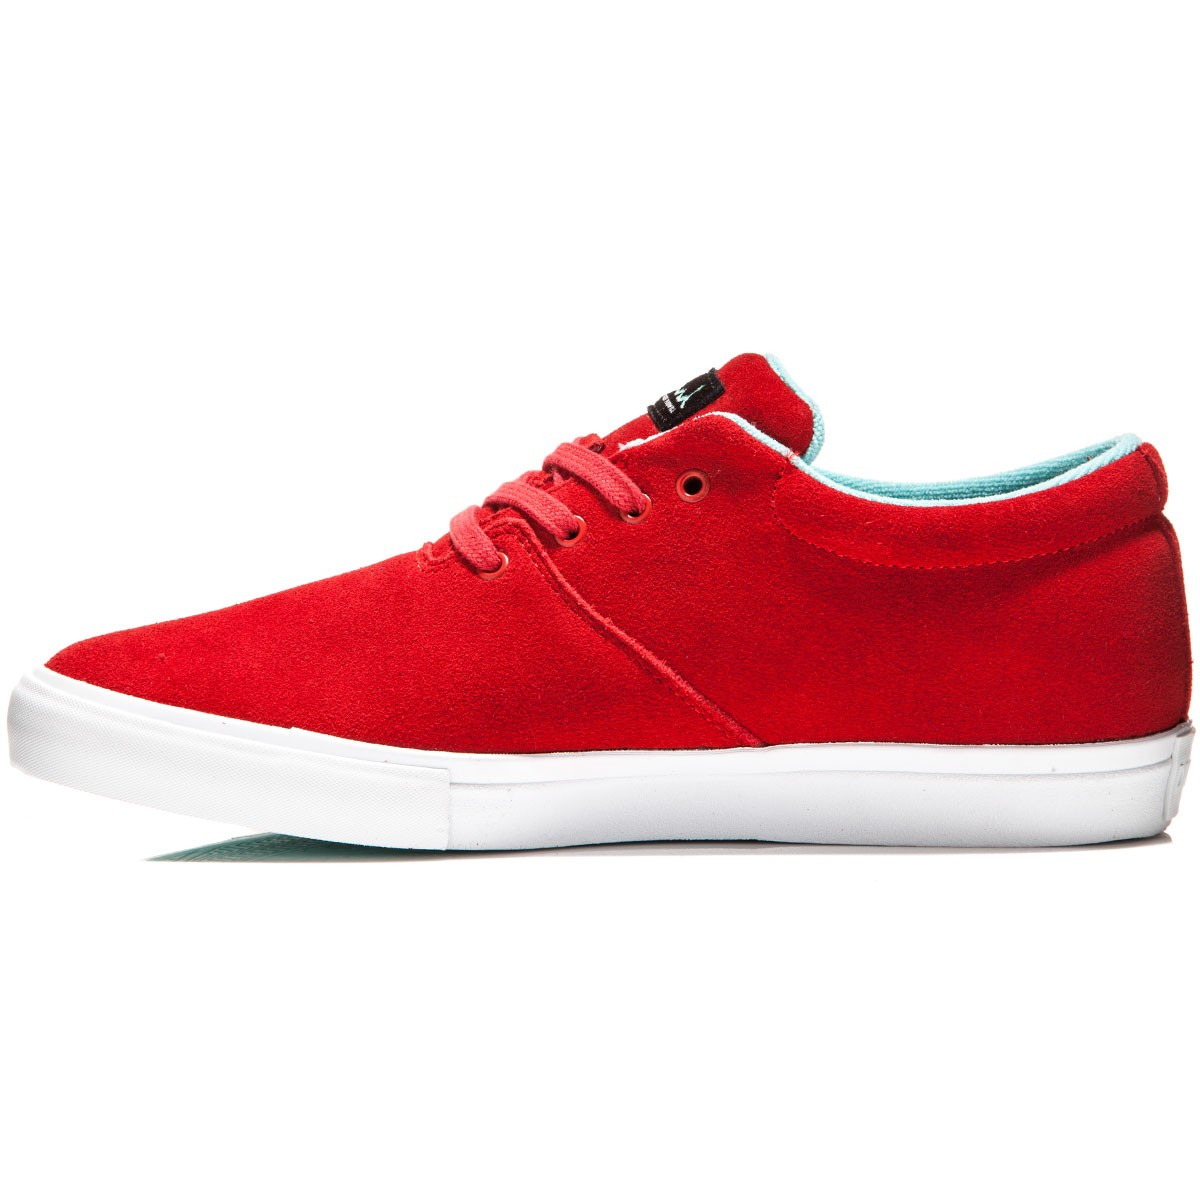 Diamond Supply Co. Torey Shoes - photo#21